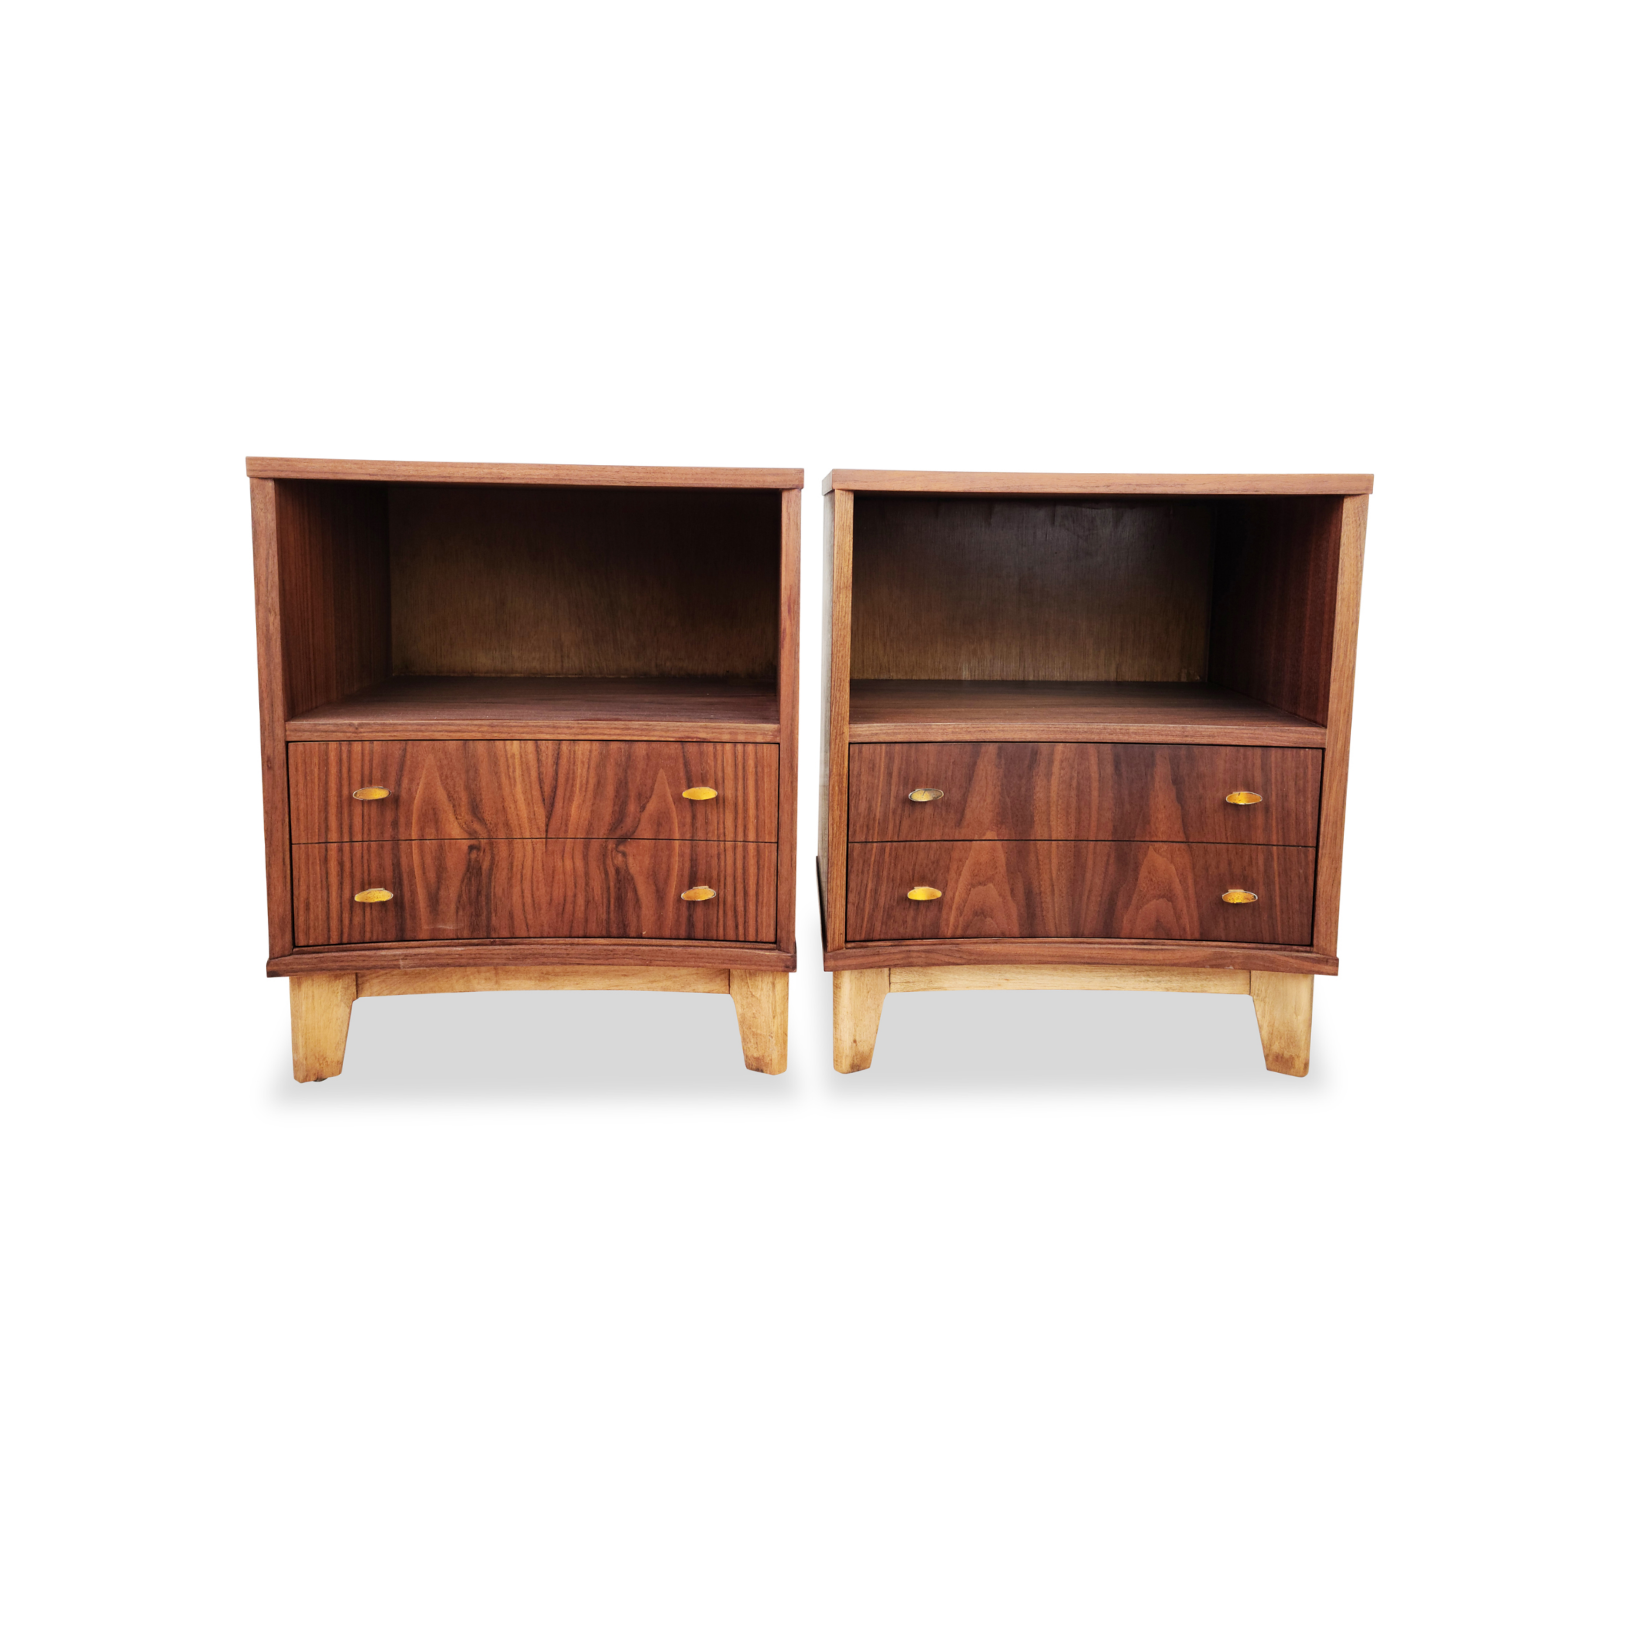 Pair of Walnut and Birch Nightstands